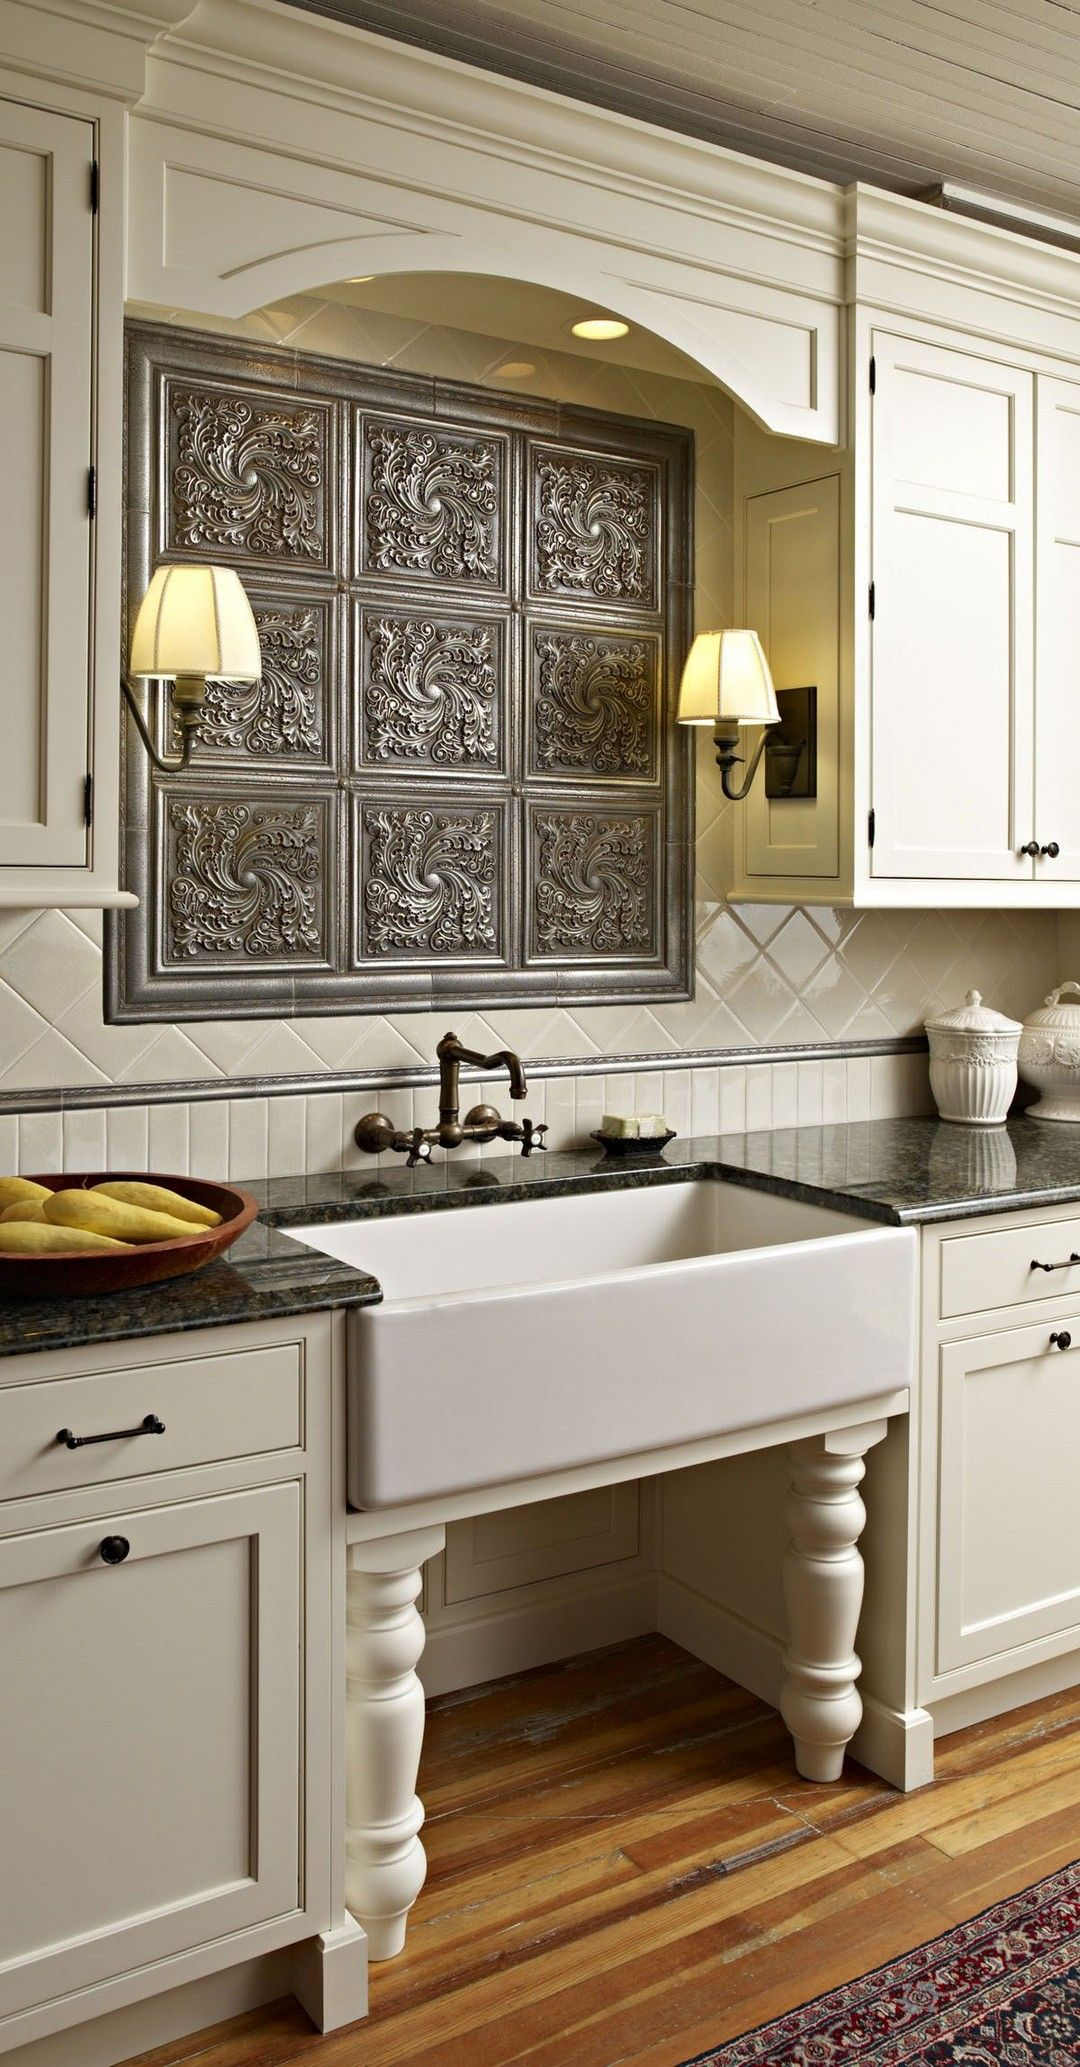 farmhouse kitchen backsplash ideas farmhouse sink kitchen corner sink kitchen farmhouse on farmhouse kitchen backsplash id=42946